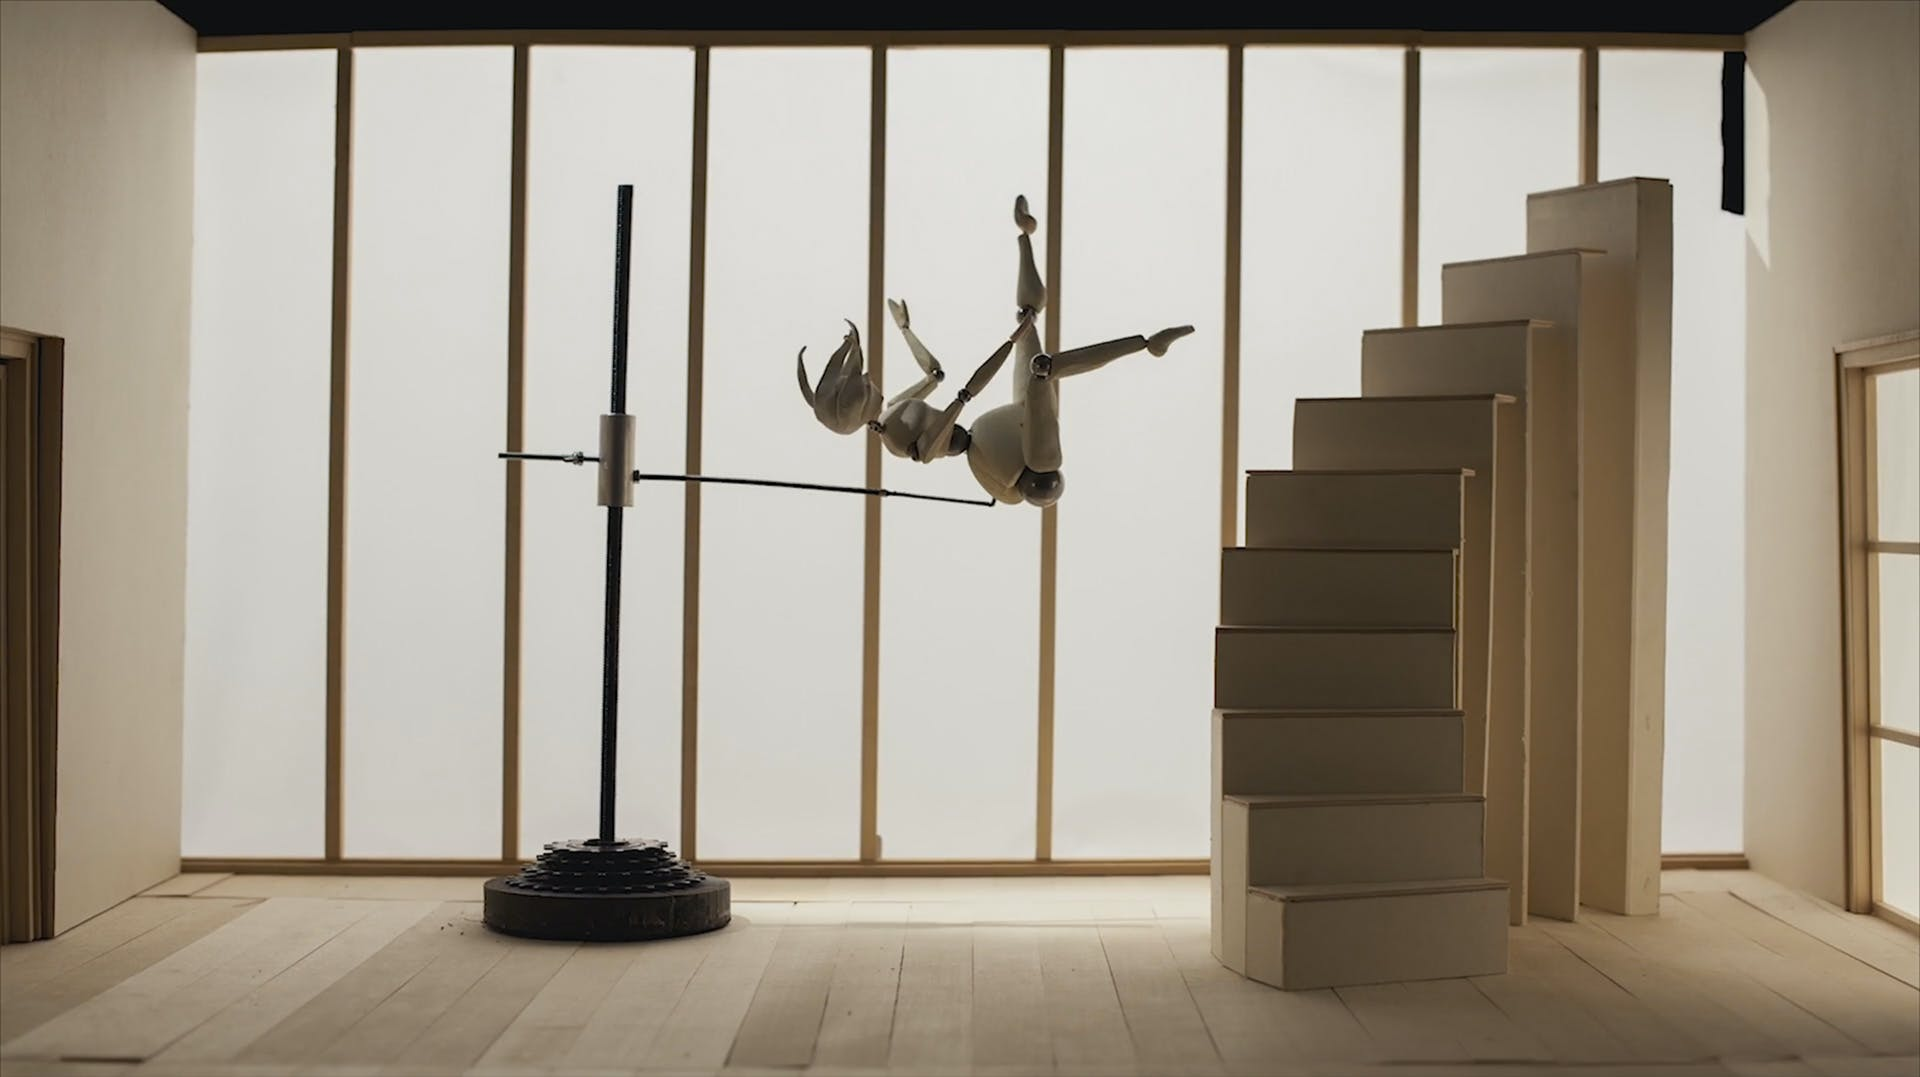 A stop-motion puppet in mid-fall from a staircase, held in pace by an armature.